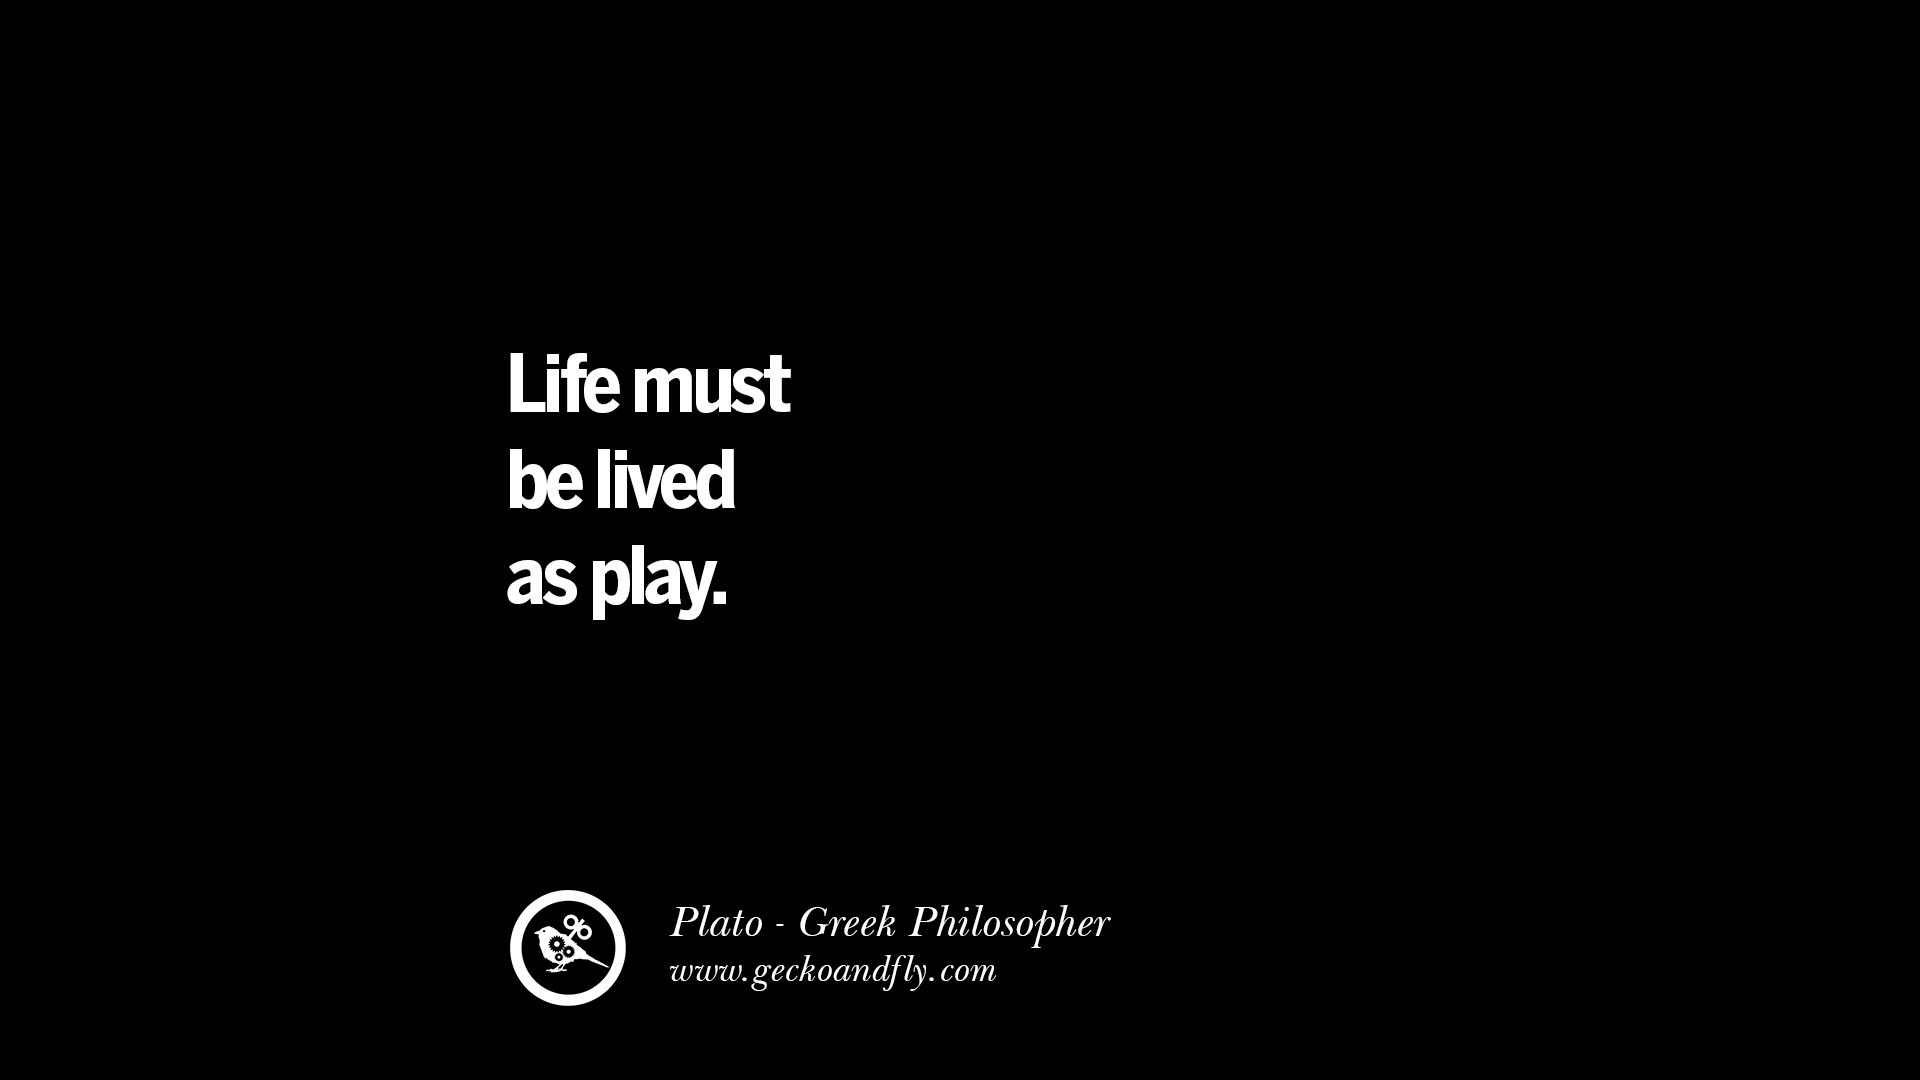 Funny Philosophy Quotes On Love : ... - Quotes Philosophy Quotes Famous Philosophy Quotes Funny Philosophy